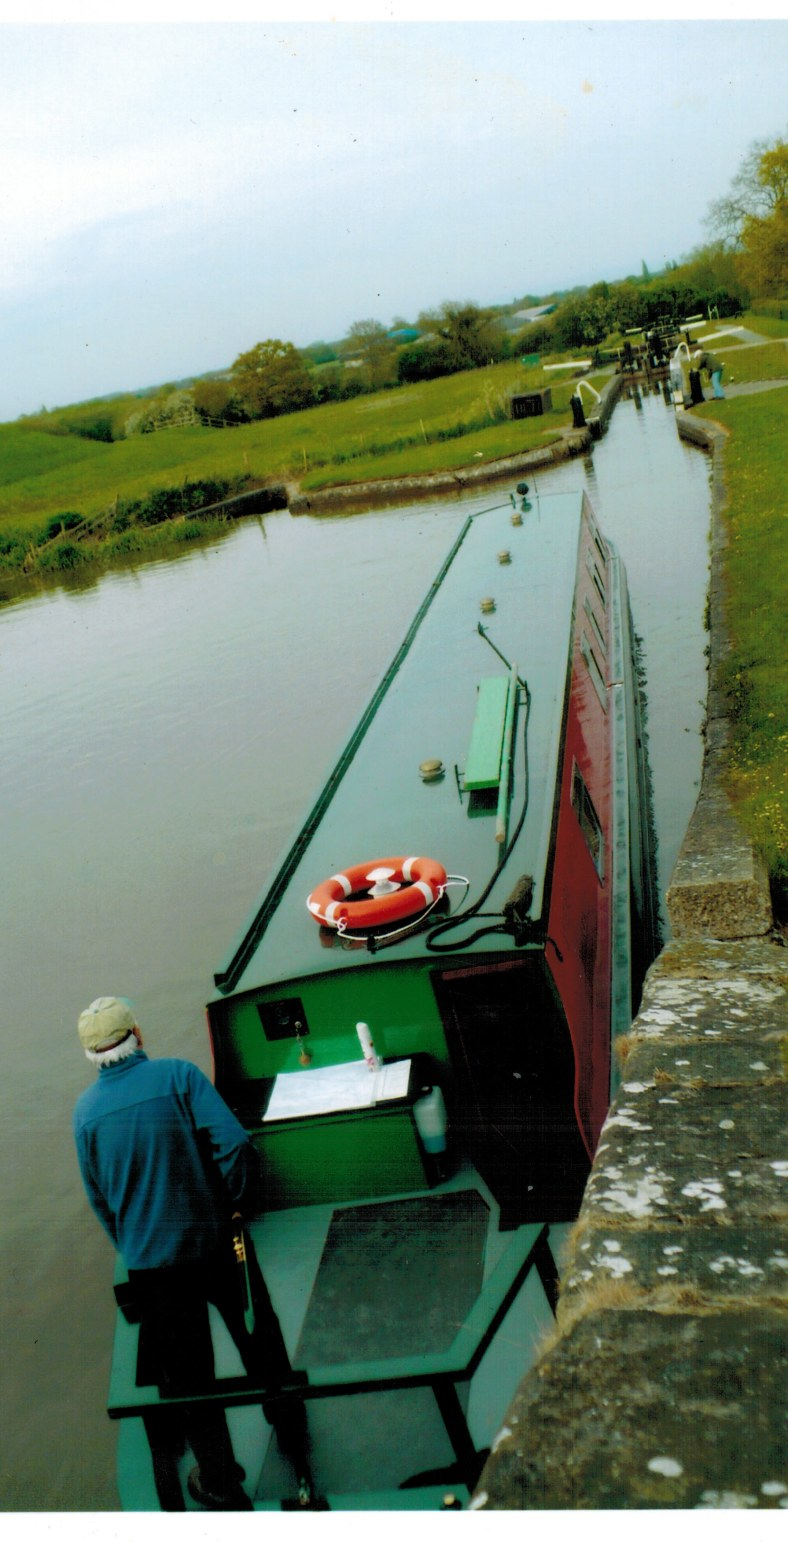 piloting-our-narrowboat10312016_0000